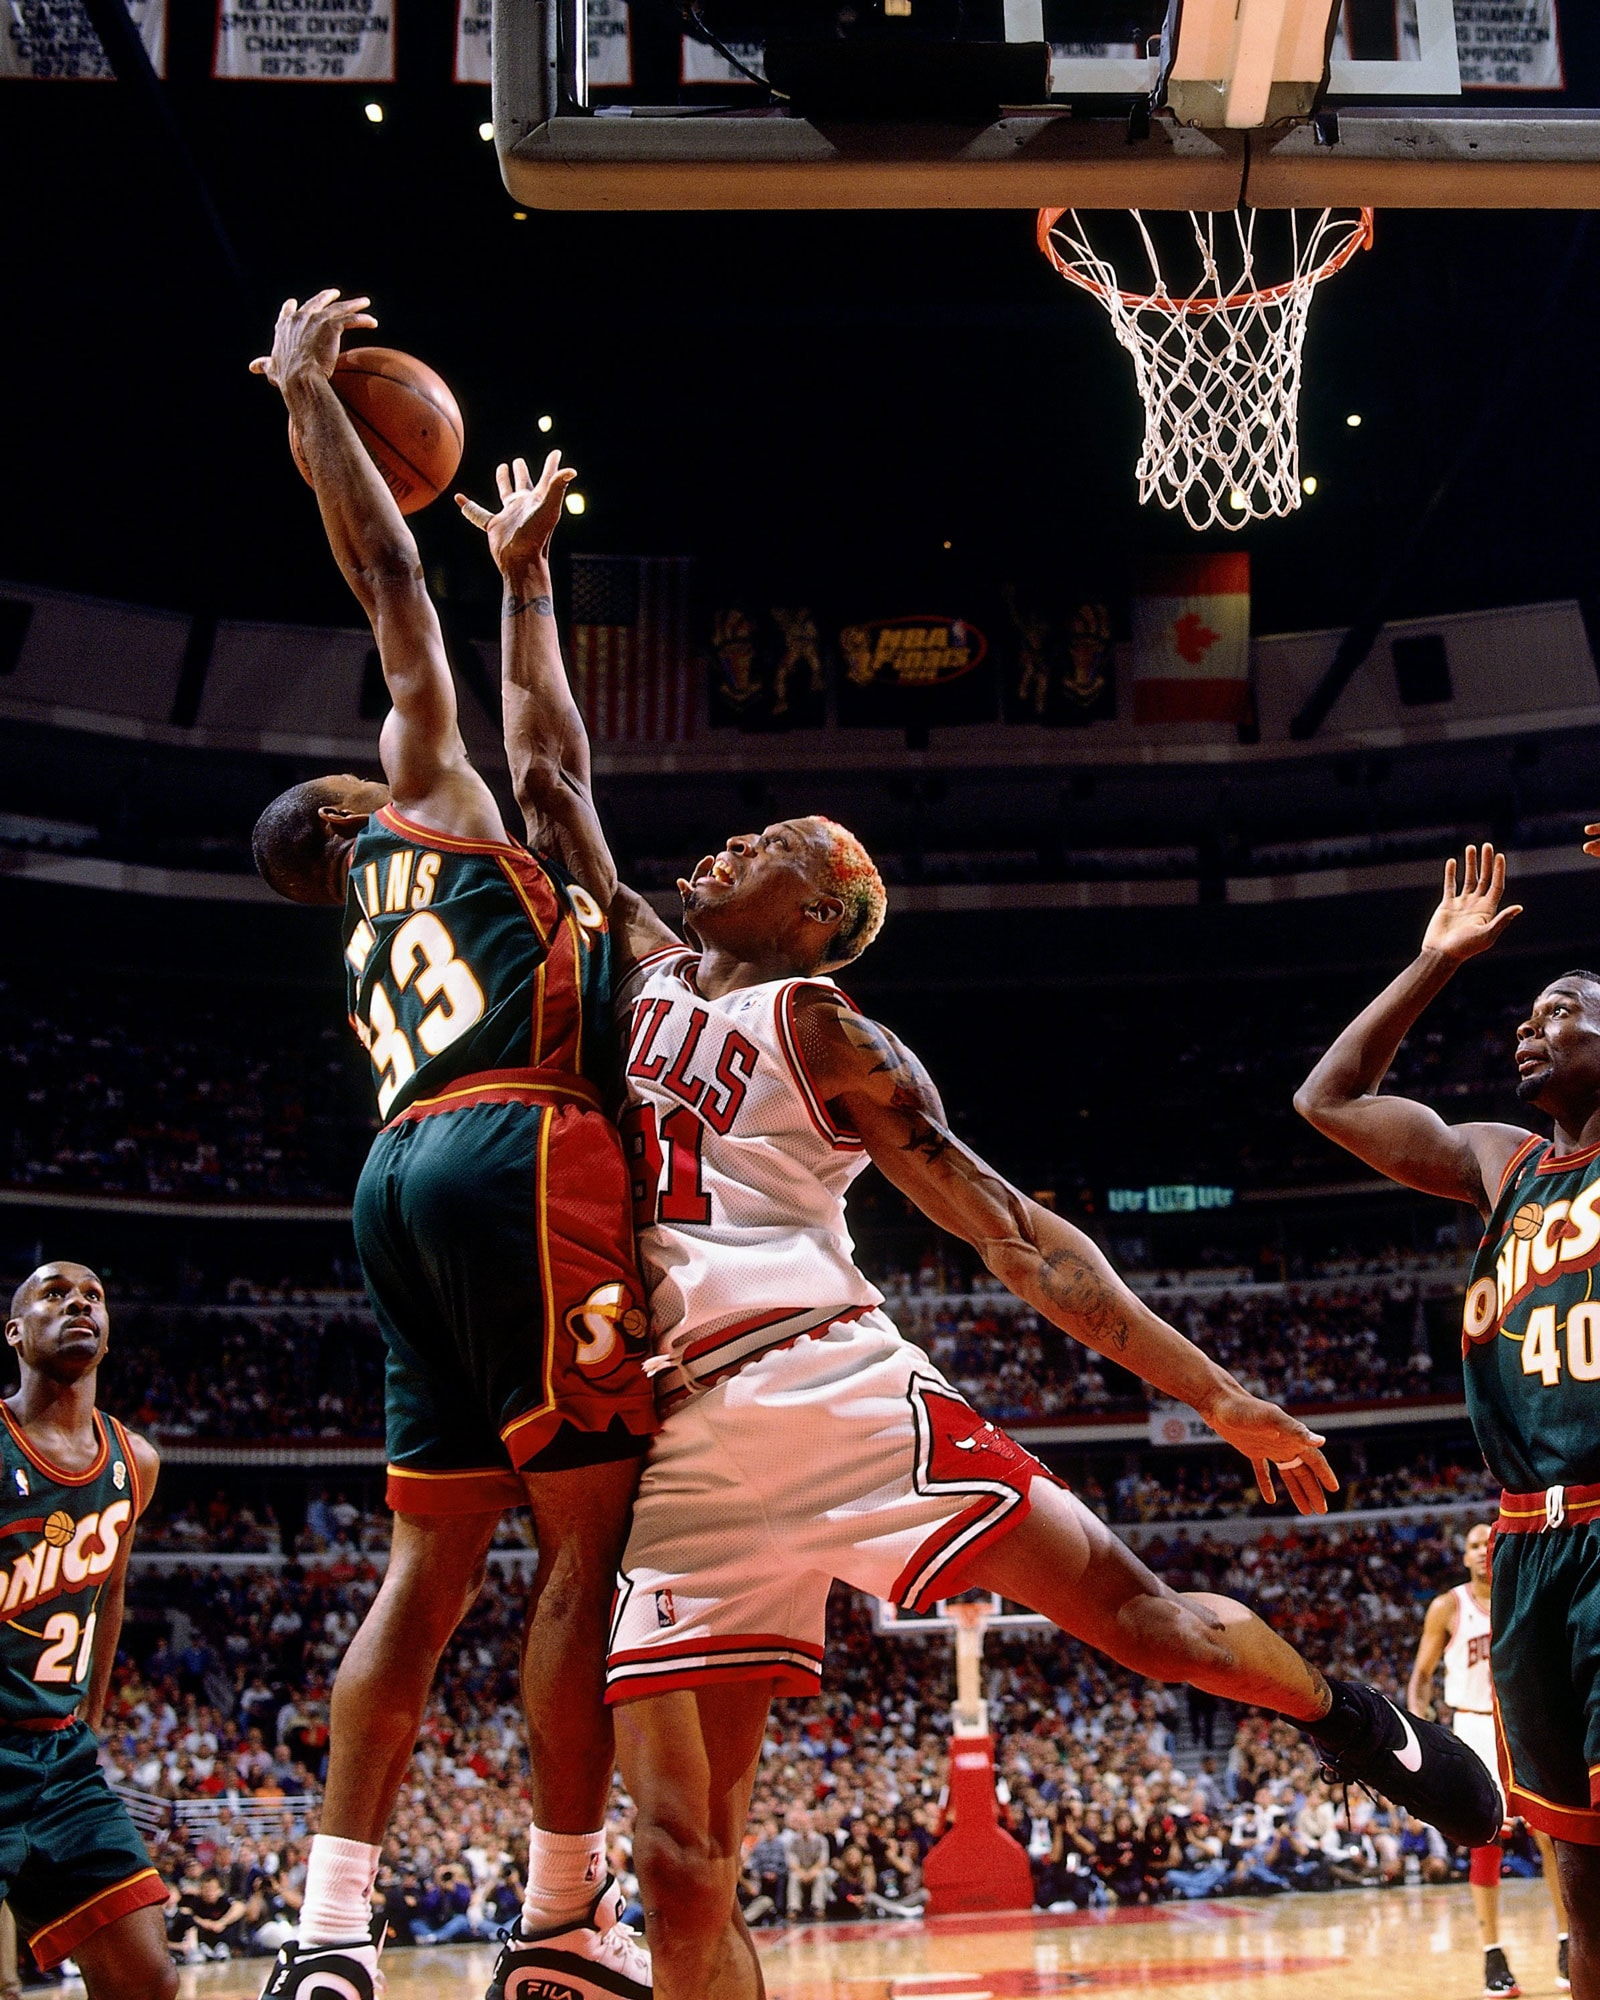 Dennis Rodman #91 of the Chicago Bulls battles for a rebound against Hersey Hawkins #33 of the Seattle SuperSonics during Game Six of the 1996 NBA Finals at the United Center on June 16, 1996 in Chicago Iillinois. The Bulls won 87-75.